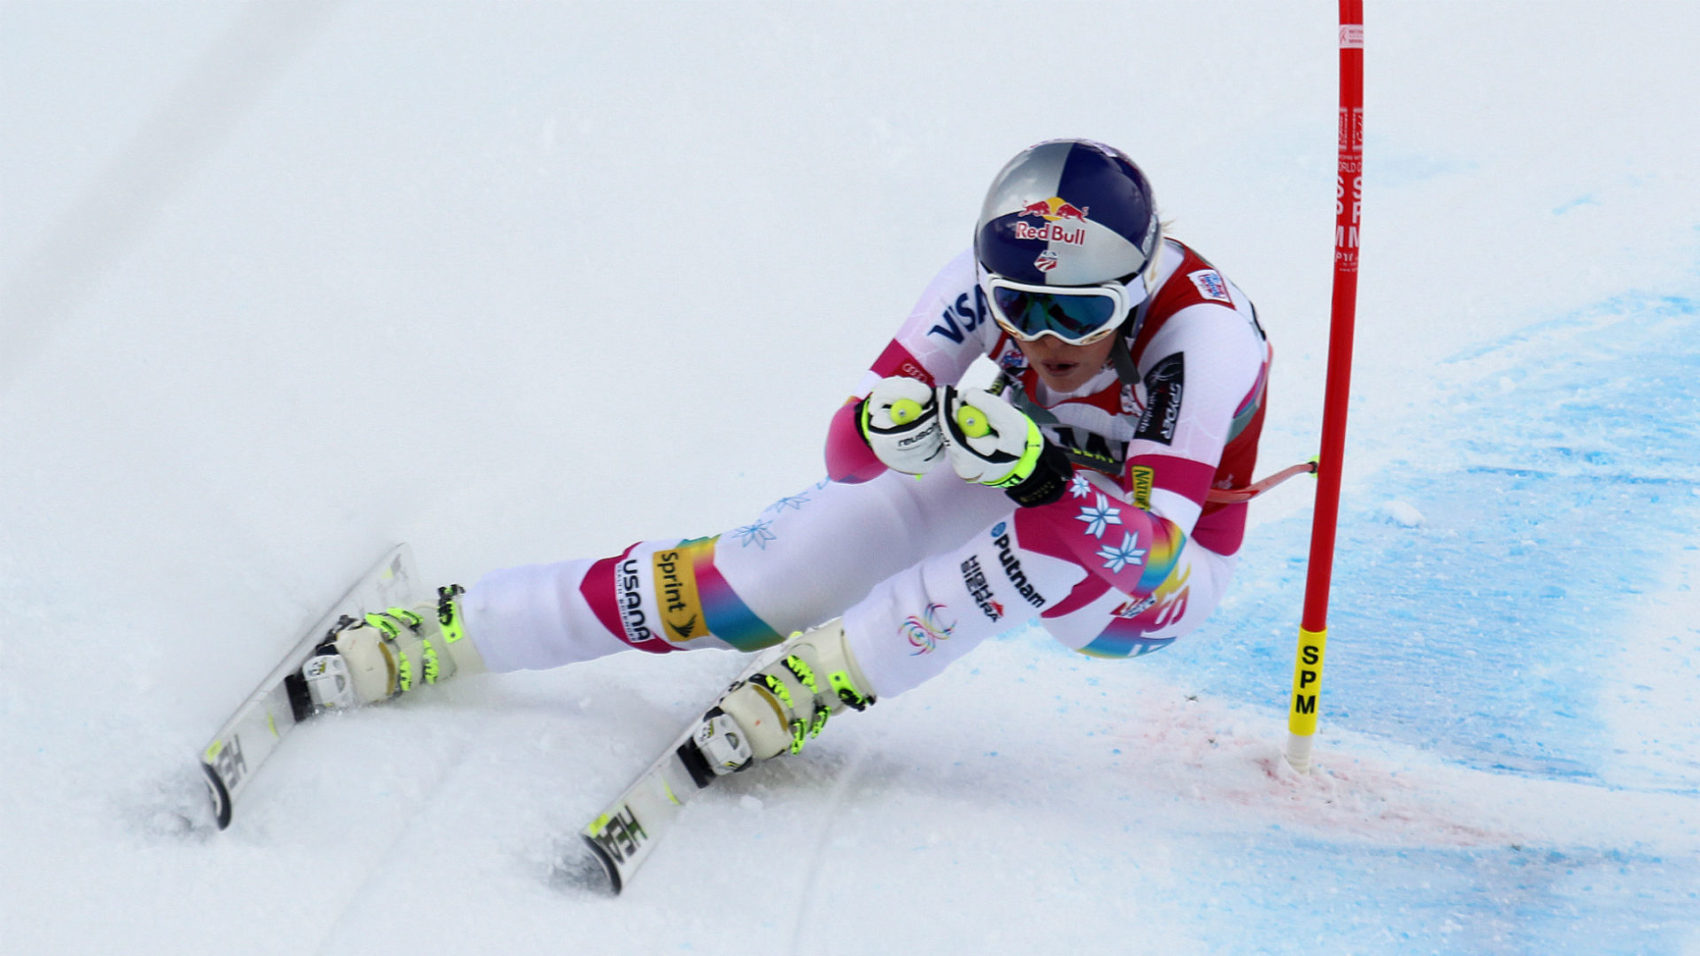 Will Lindsey Vonn always be the most famous female ski racer?